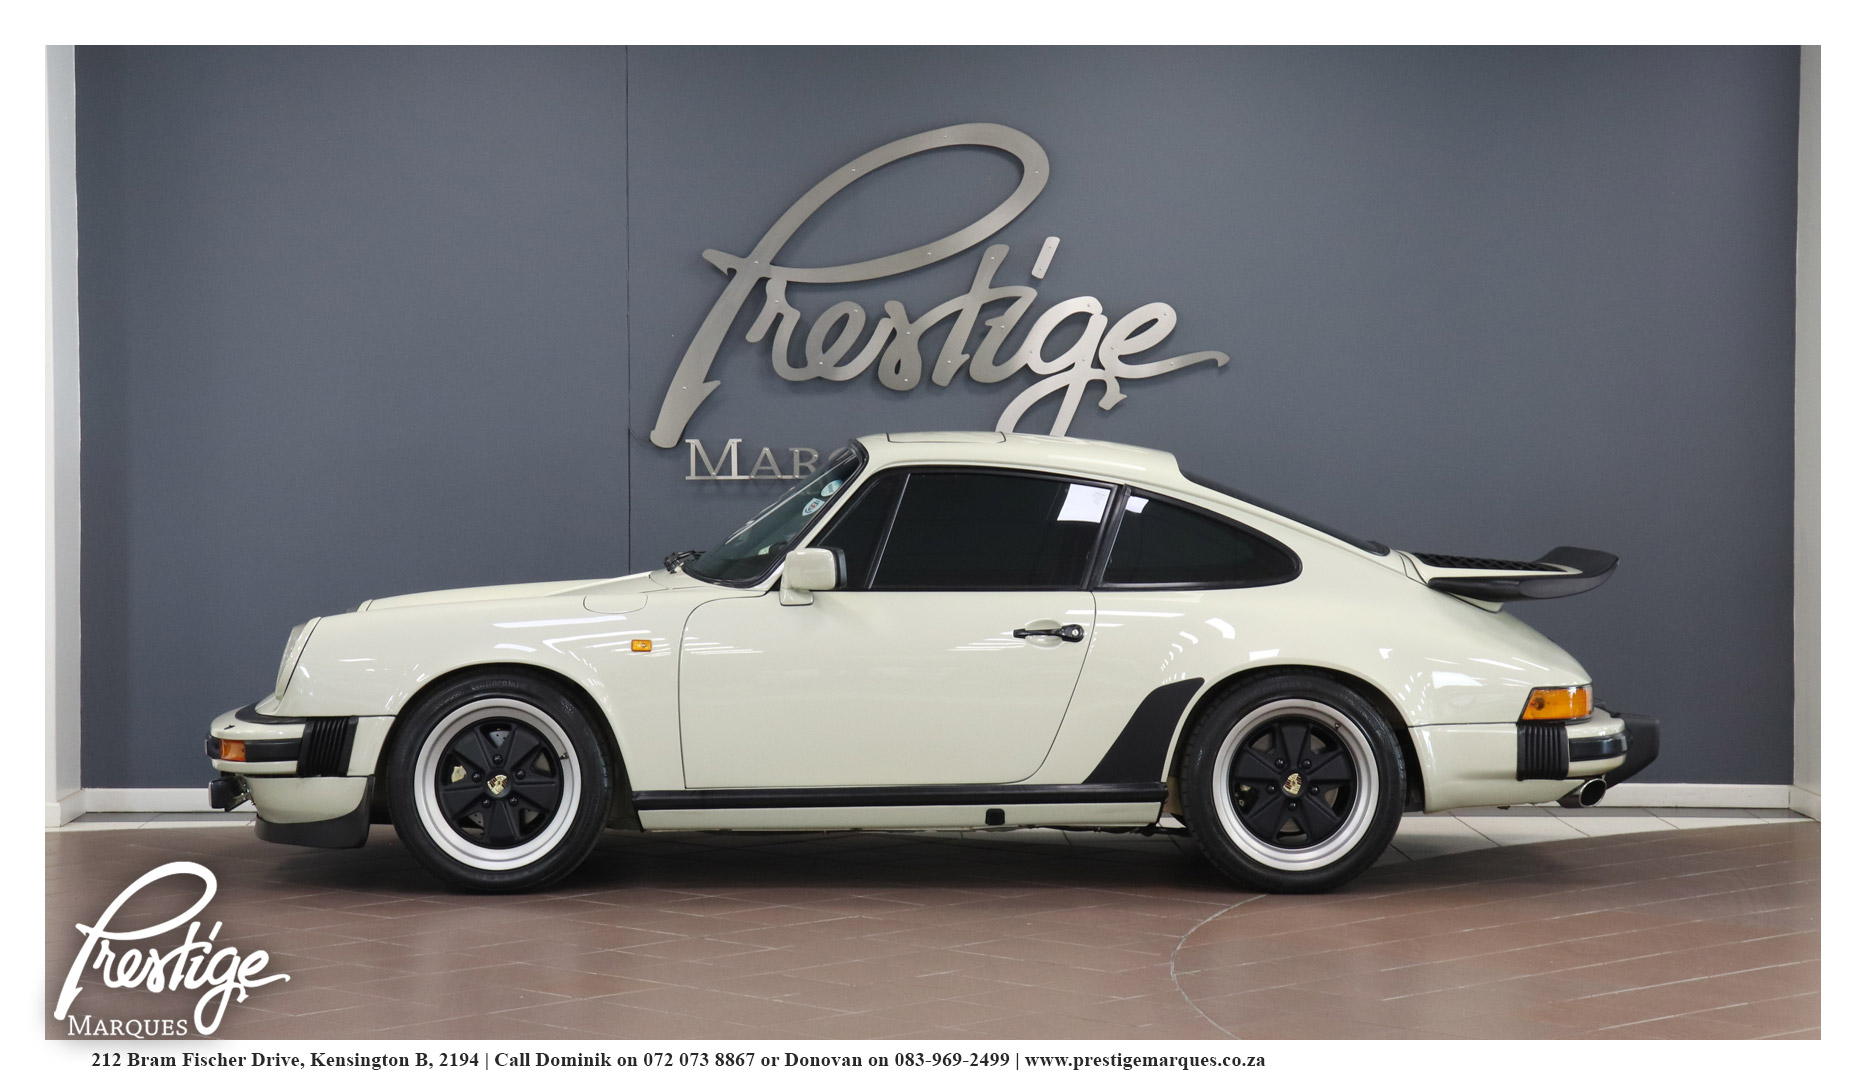 1982-Porsche-911-Carrera-20-Year-Anniversary-Tribute-Build-Prestige-Marques-Randburg-Sandton-6